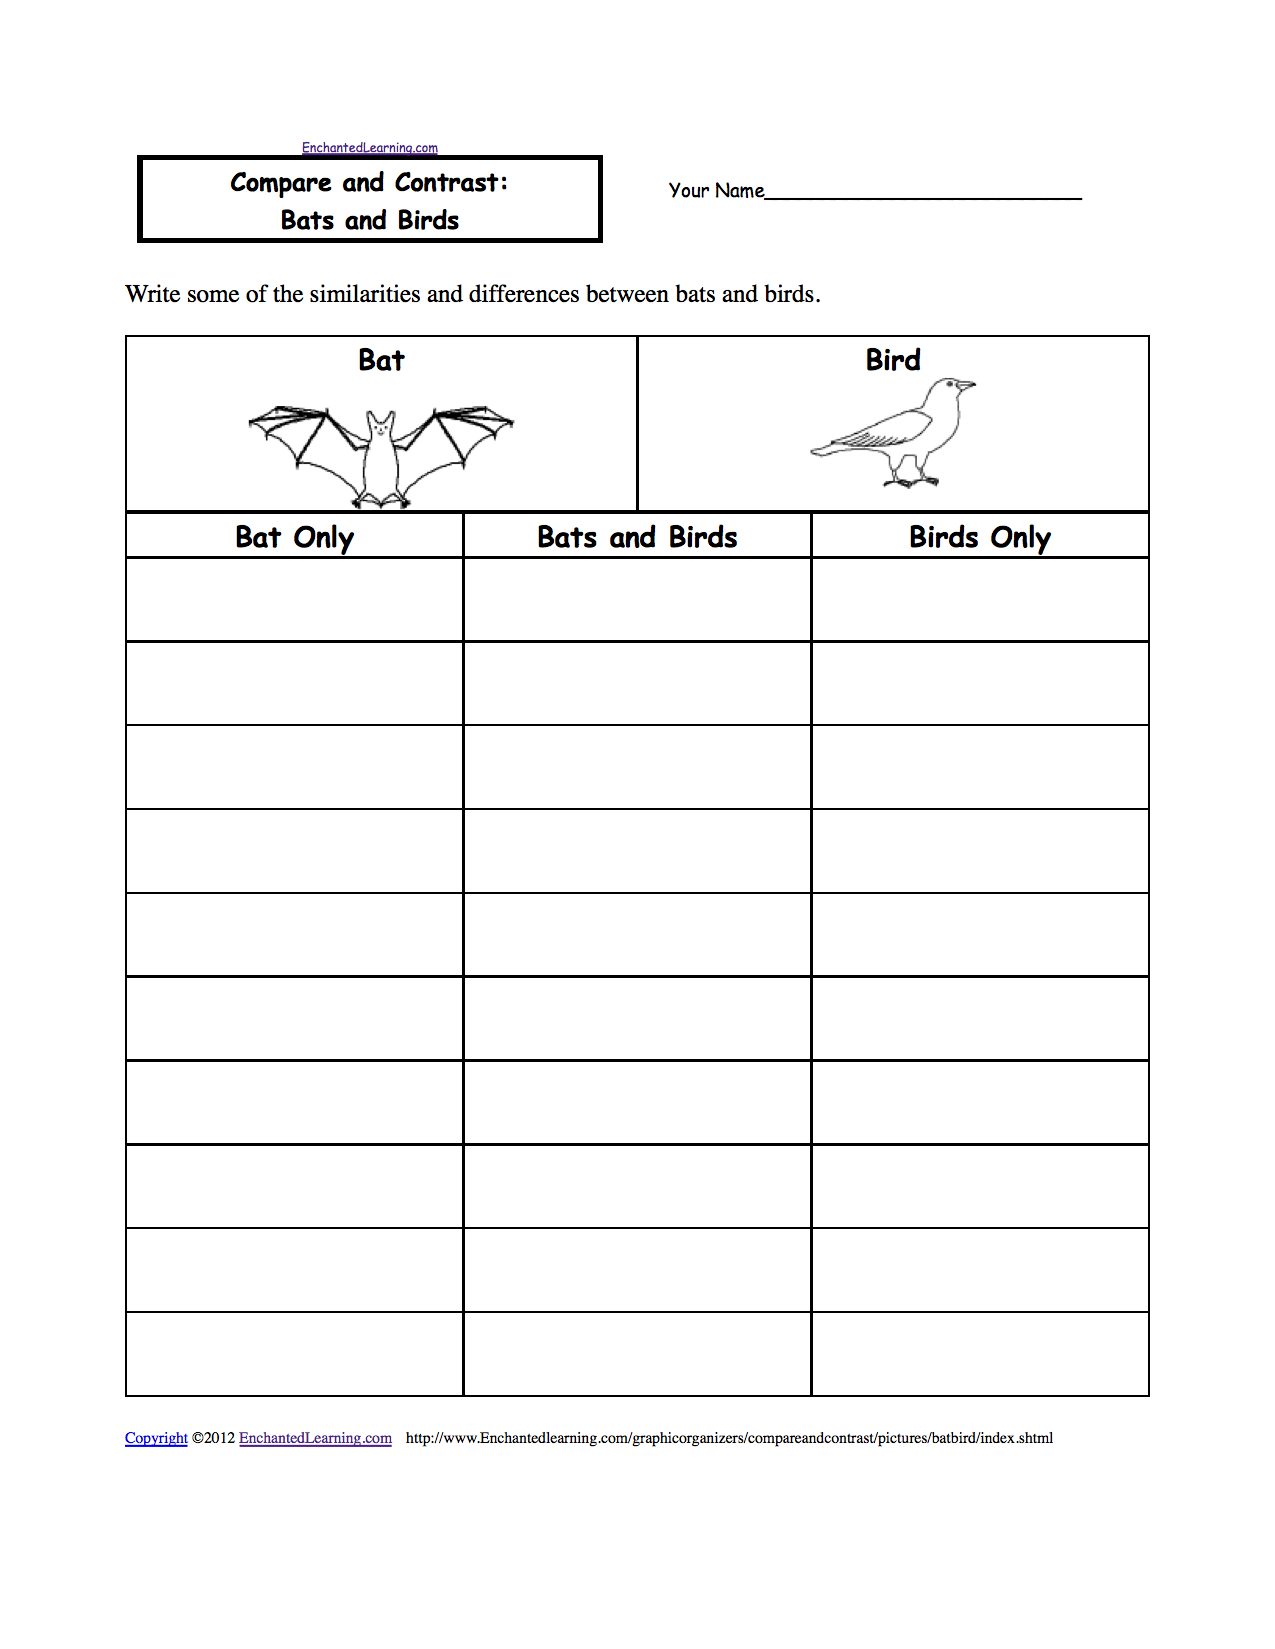 Worksheets Compare And Contrast Worksheets compare and contrast worksheets to print enchantedlearning com